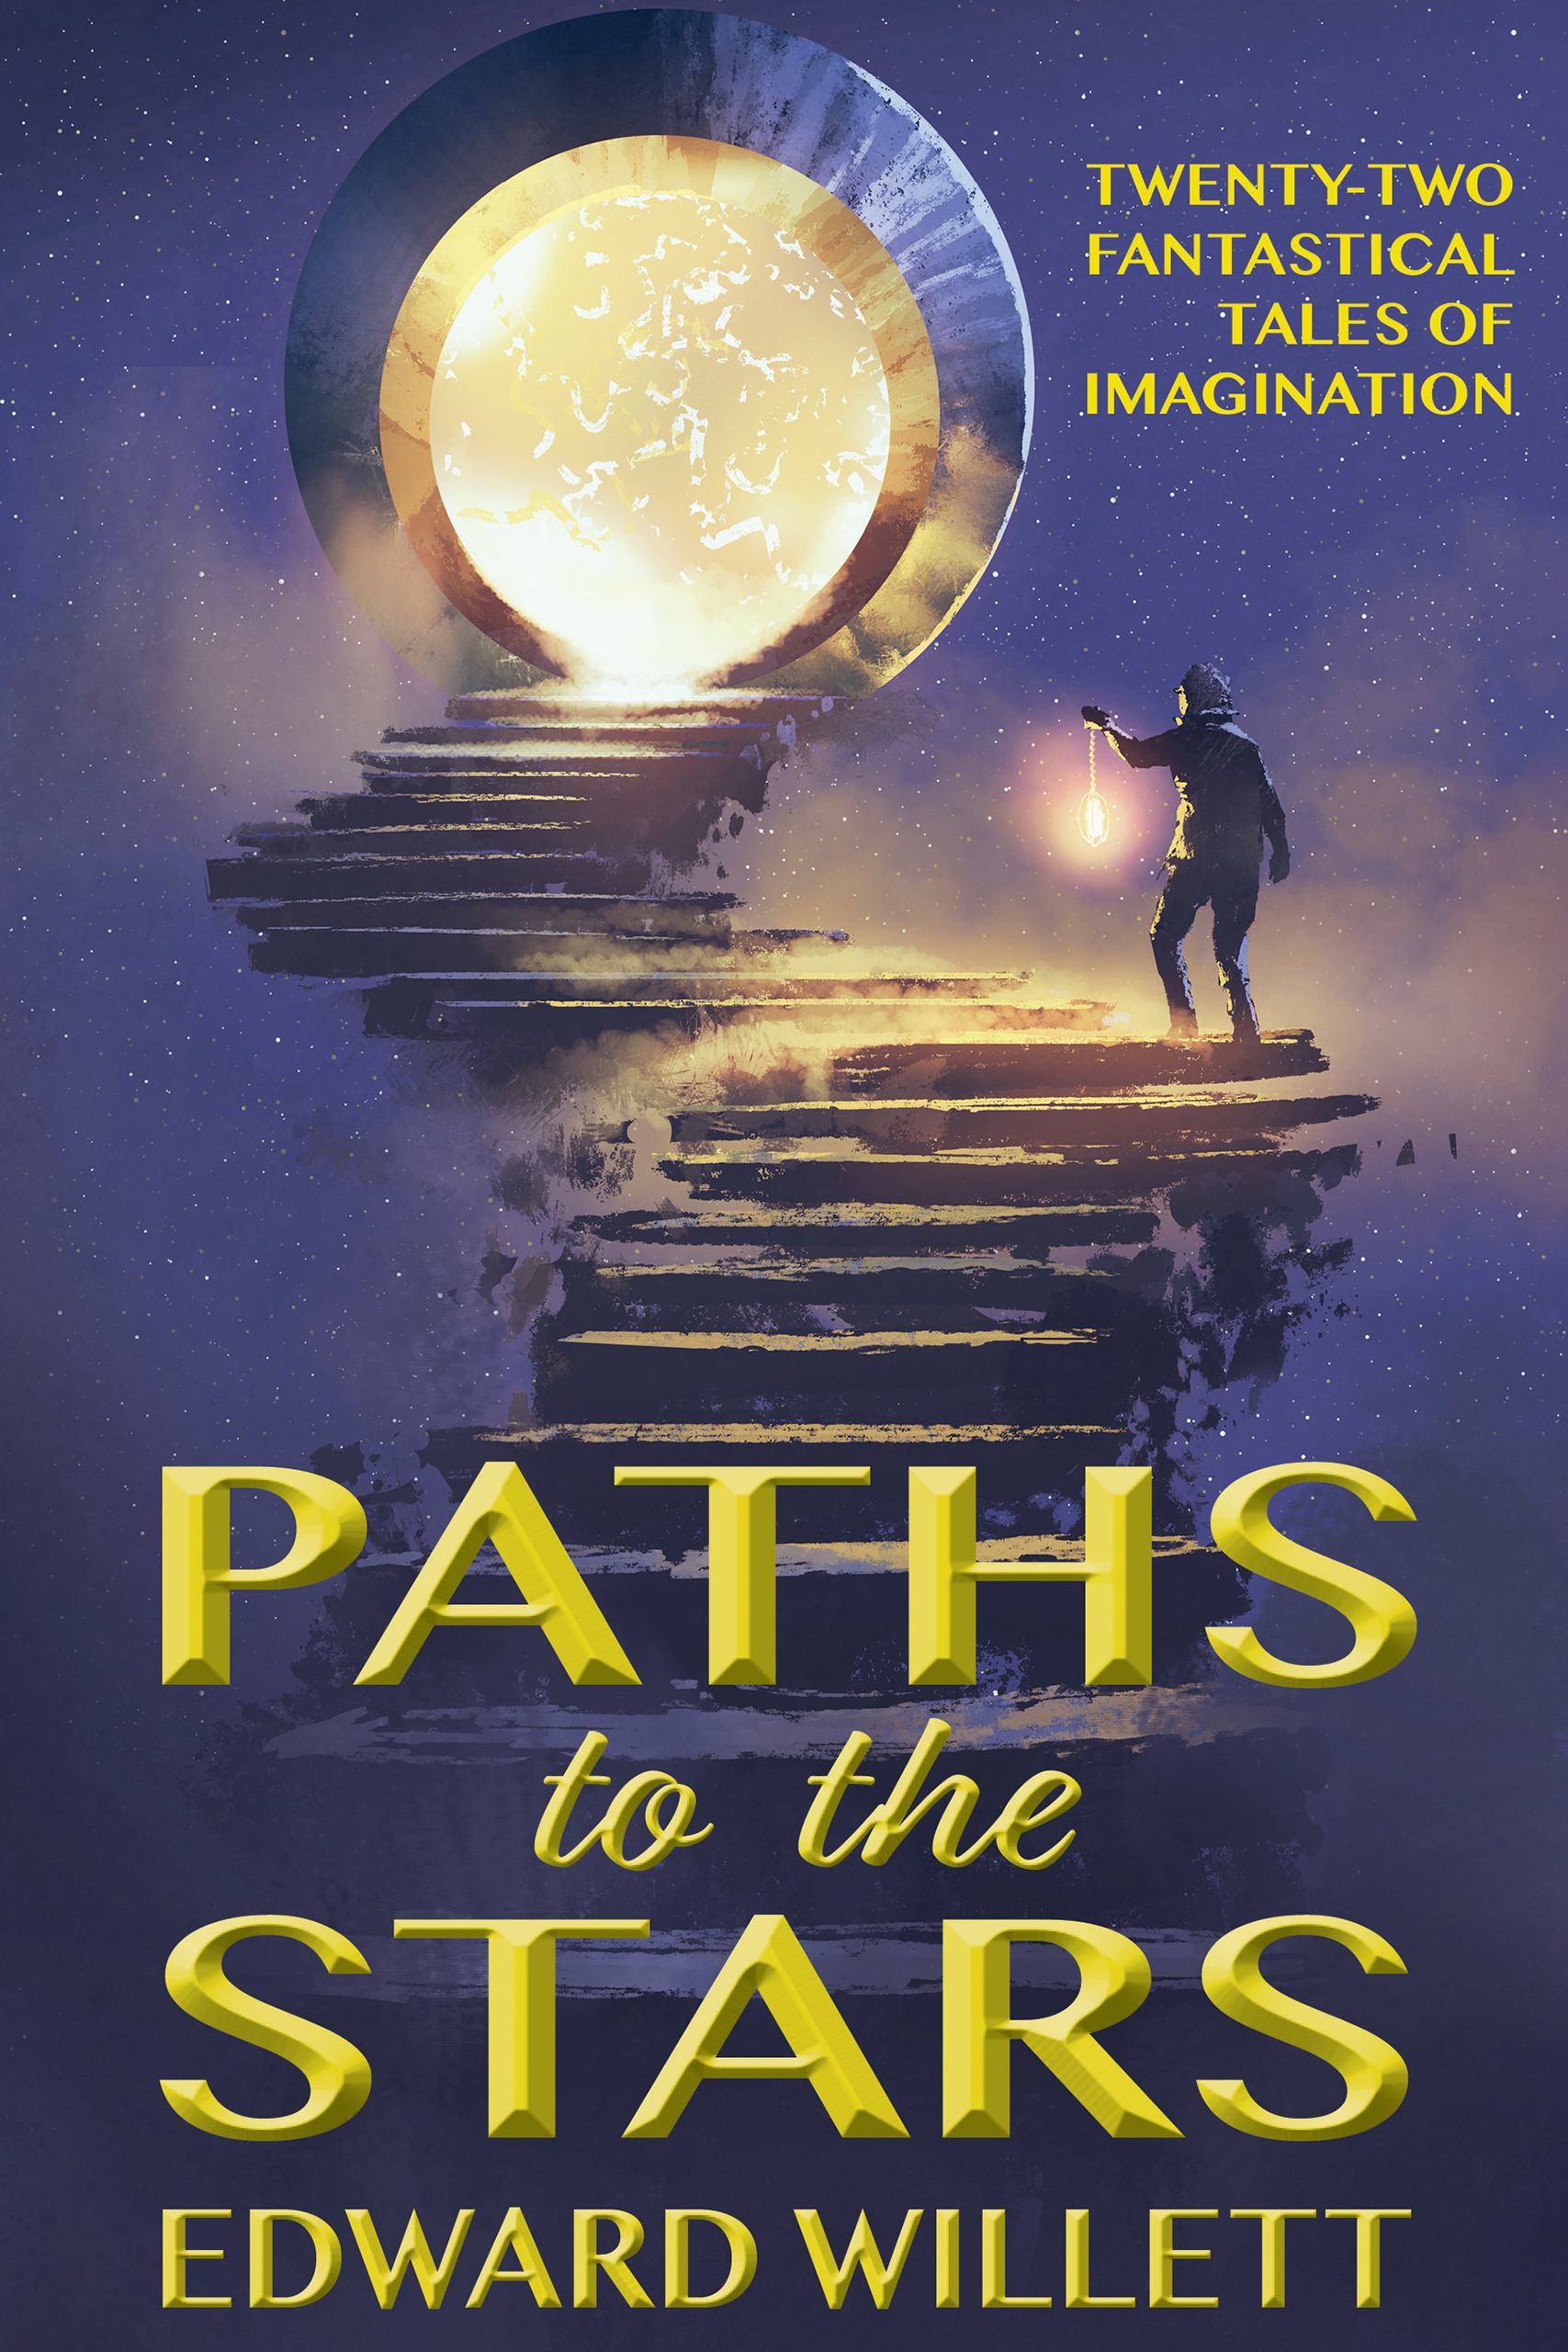 Paths to the stars e cover hi res